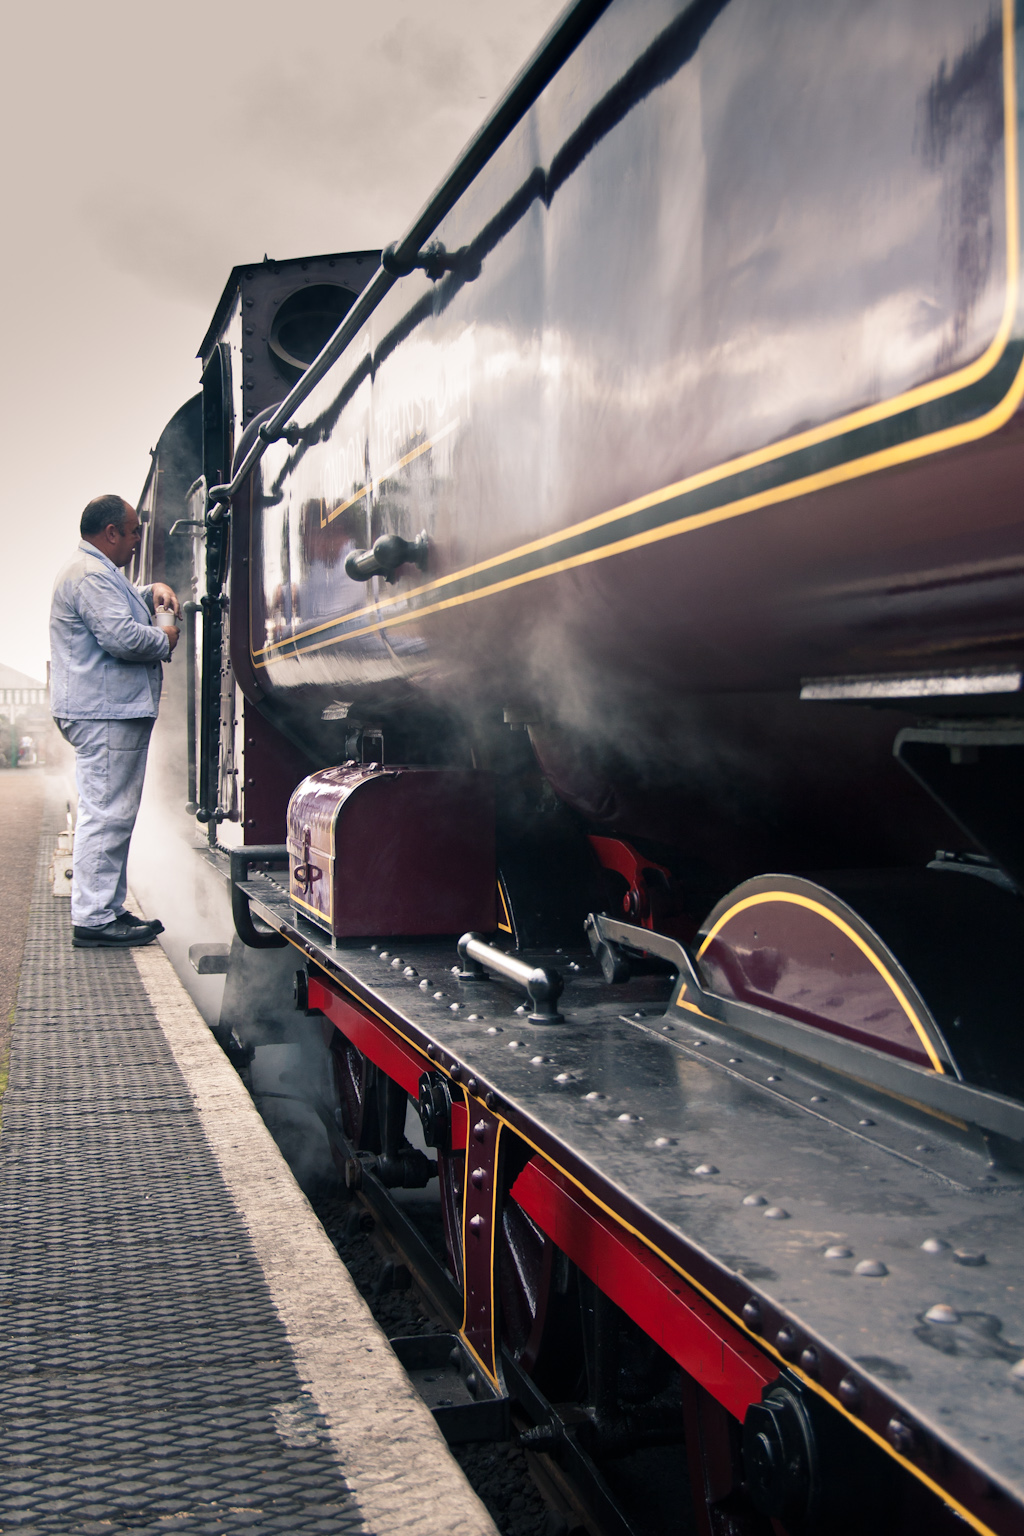 An engineer stands next to a steam train